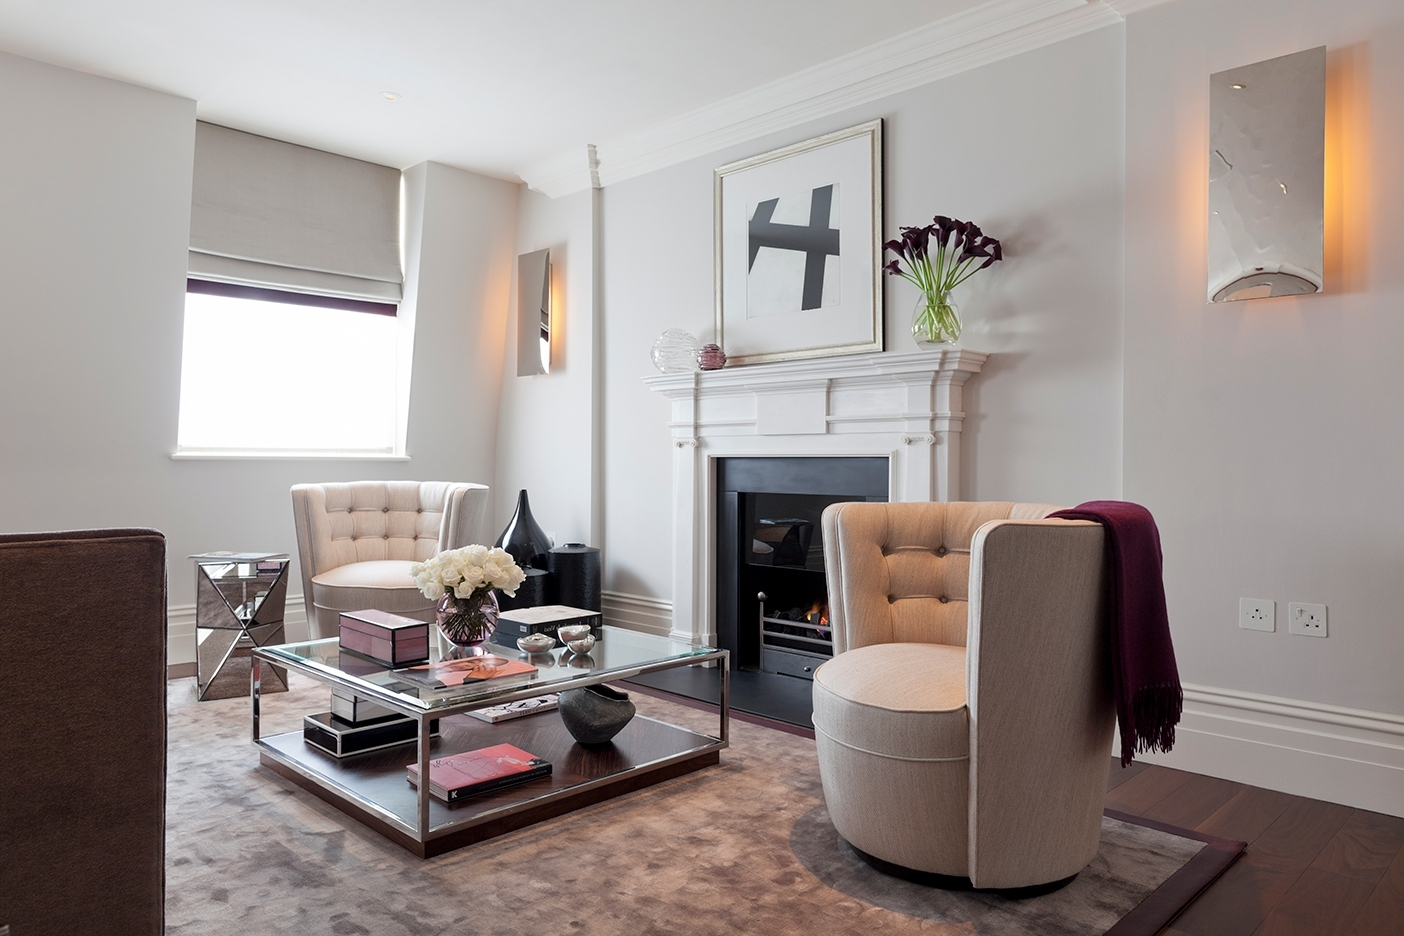 Chesneys Usa | Expert Advice On Size And Style Of Fireplaces 30+ Living Room Chimney Breast Inspirations